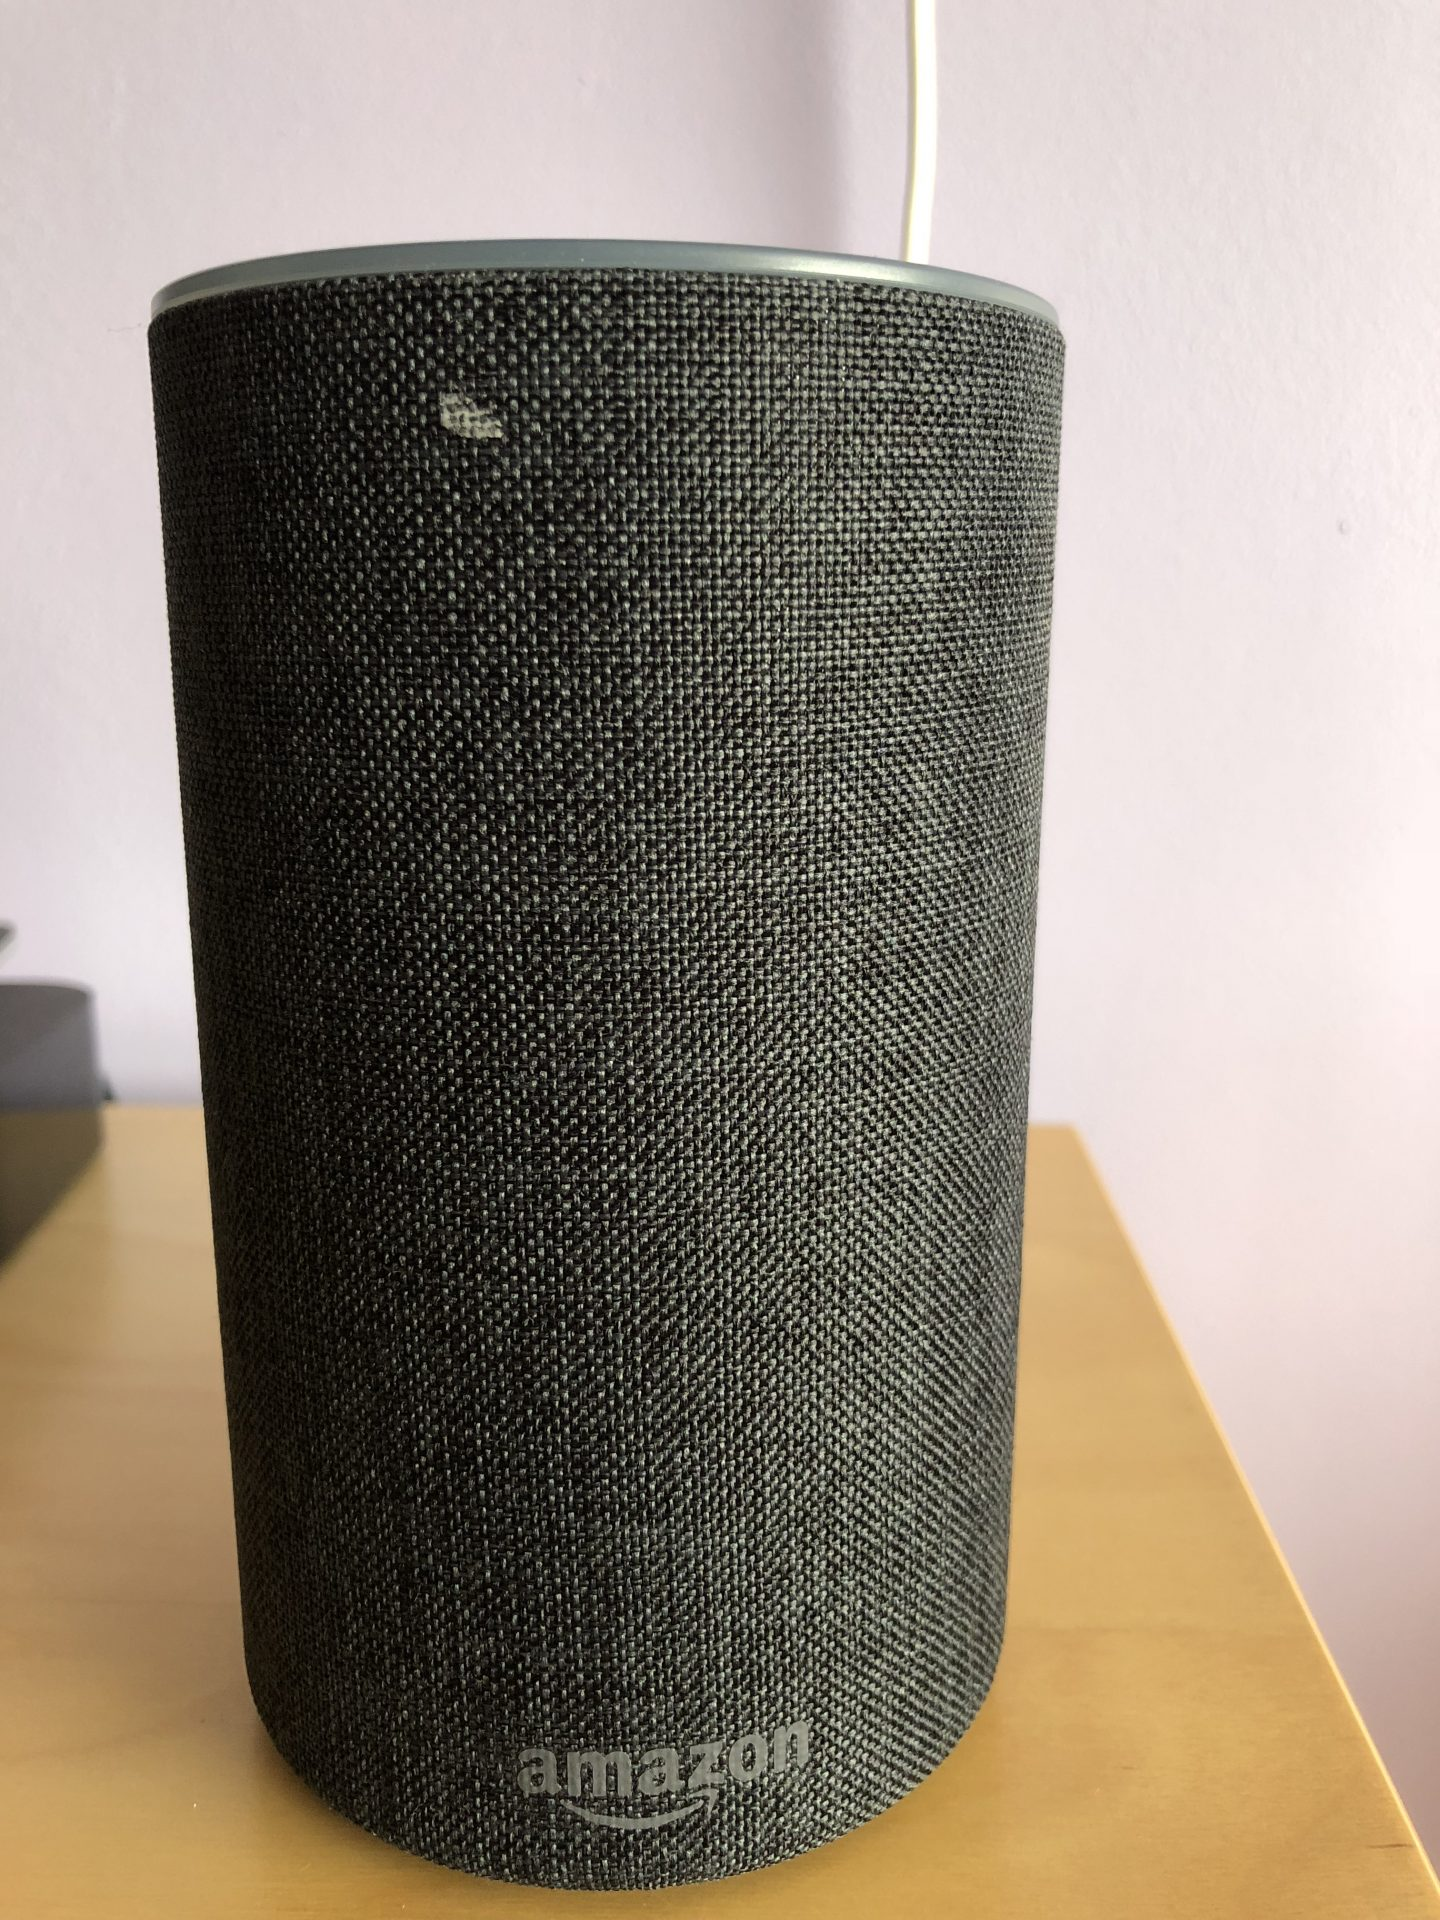 Picture of an Amazon Echo